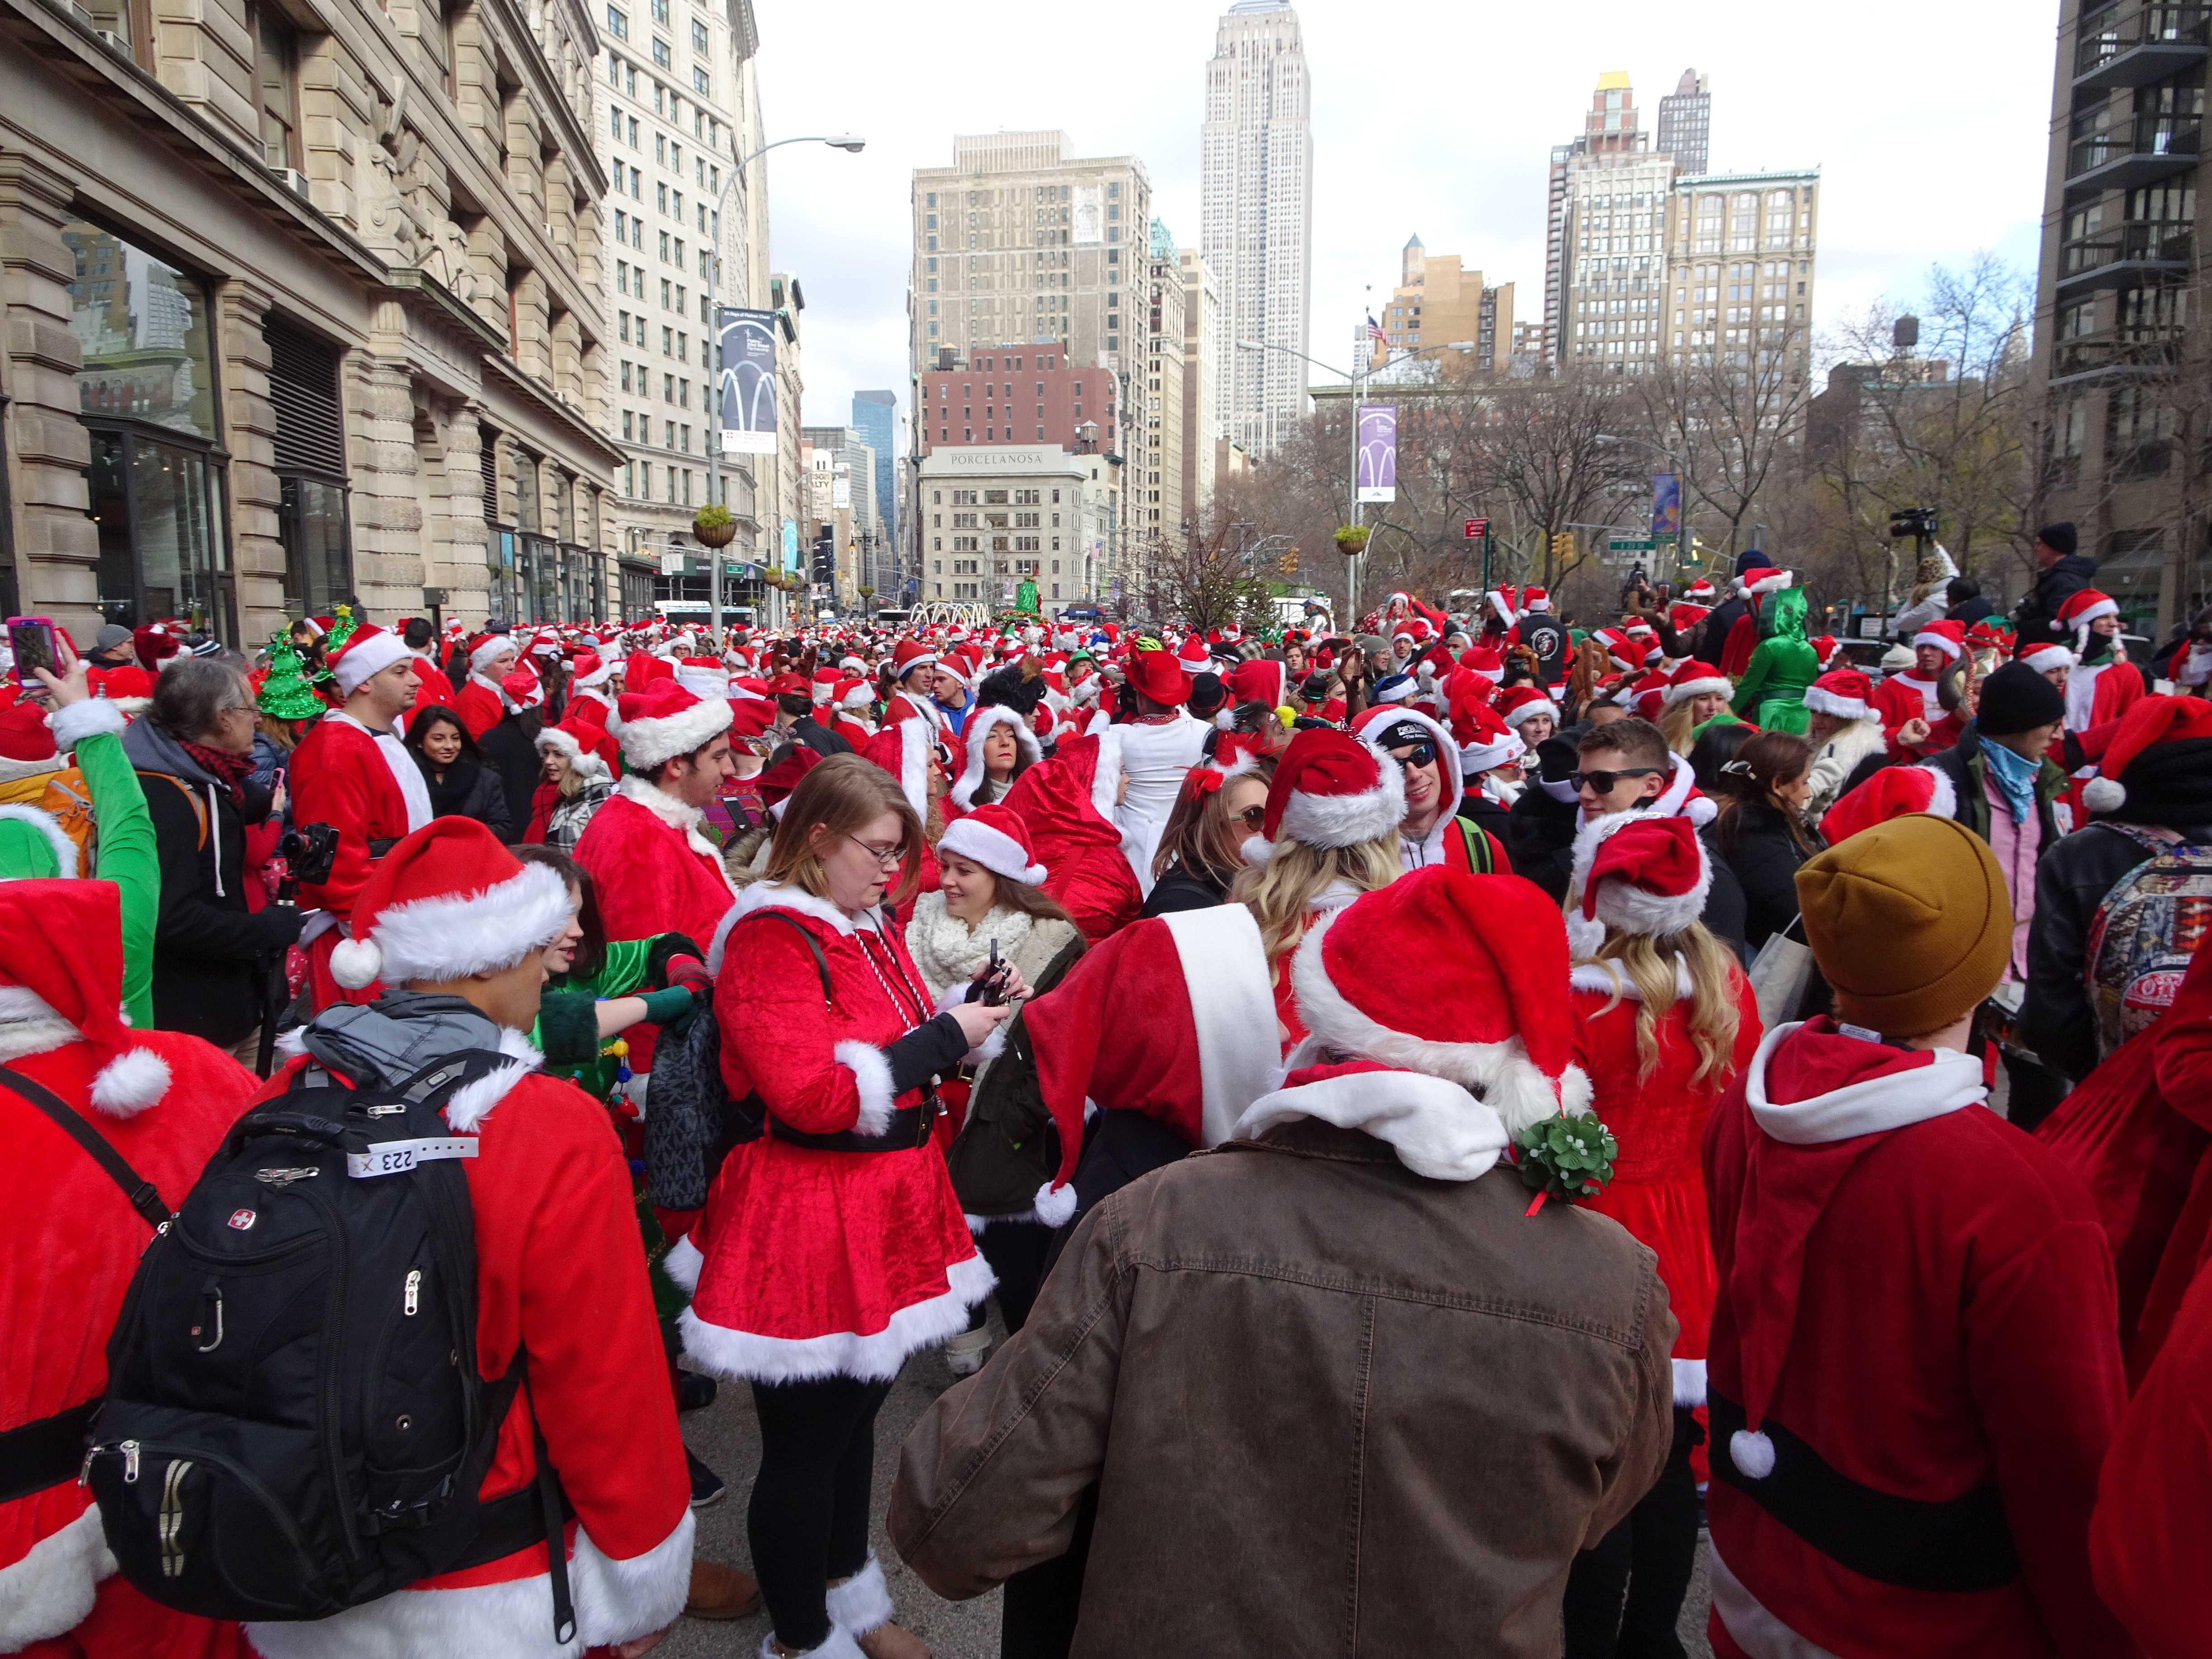 The time is near, Santacon is here